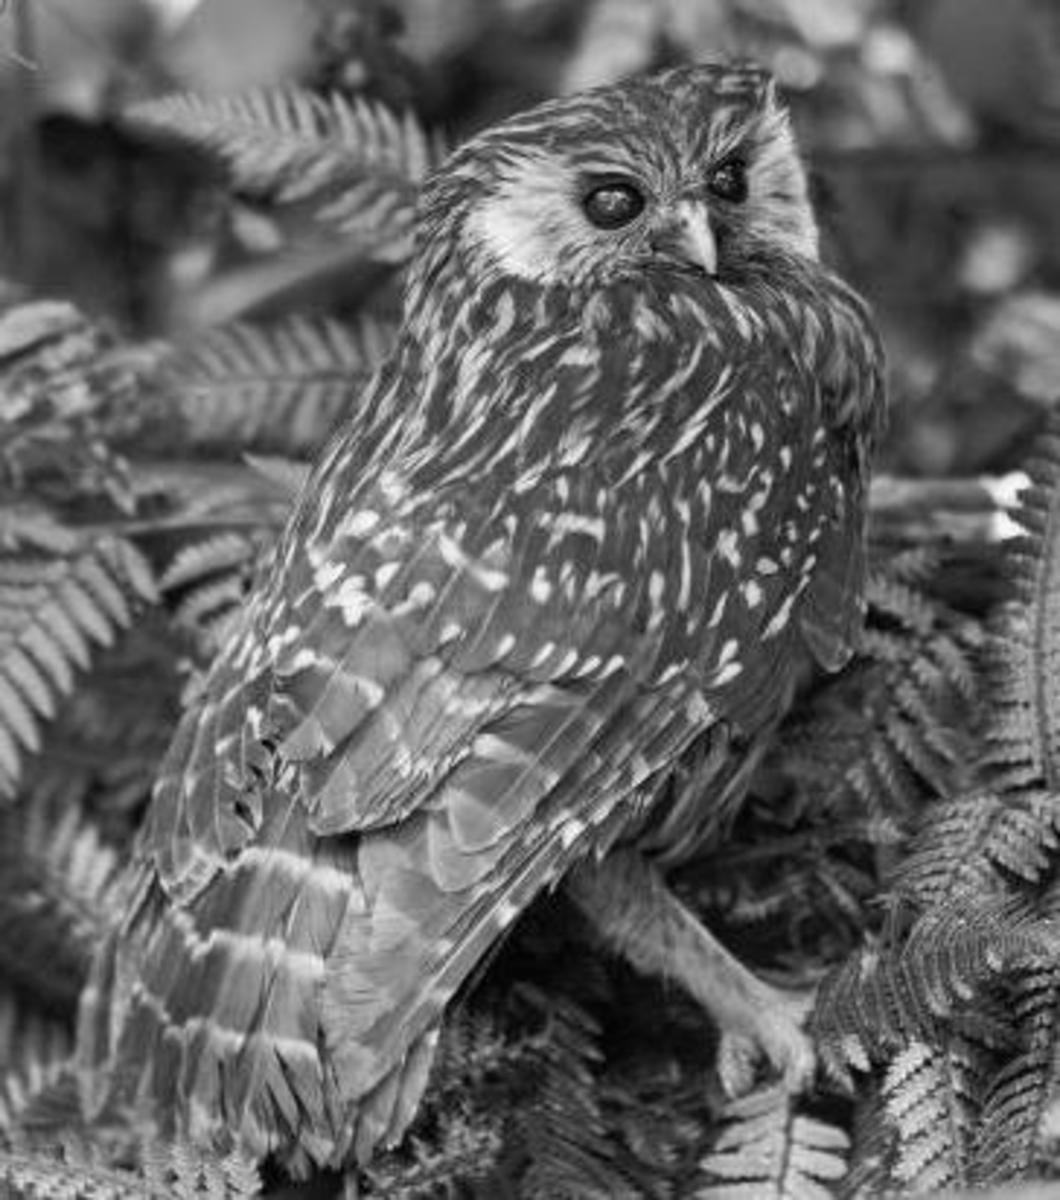 A real photo of the Laughing Owl, taken during 1892 by Henry Charles Clarke Wright